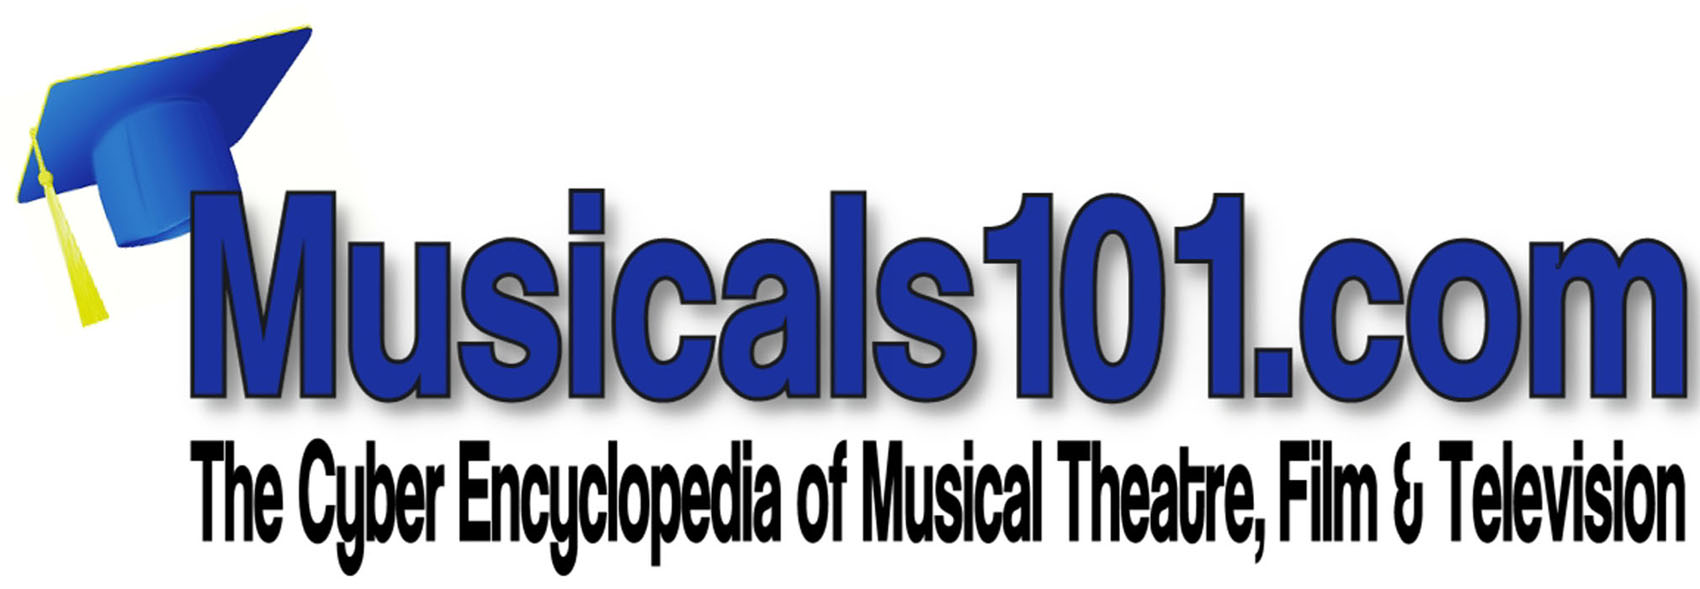 How to write a musical theatre theatre program entrance essay